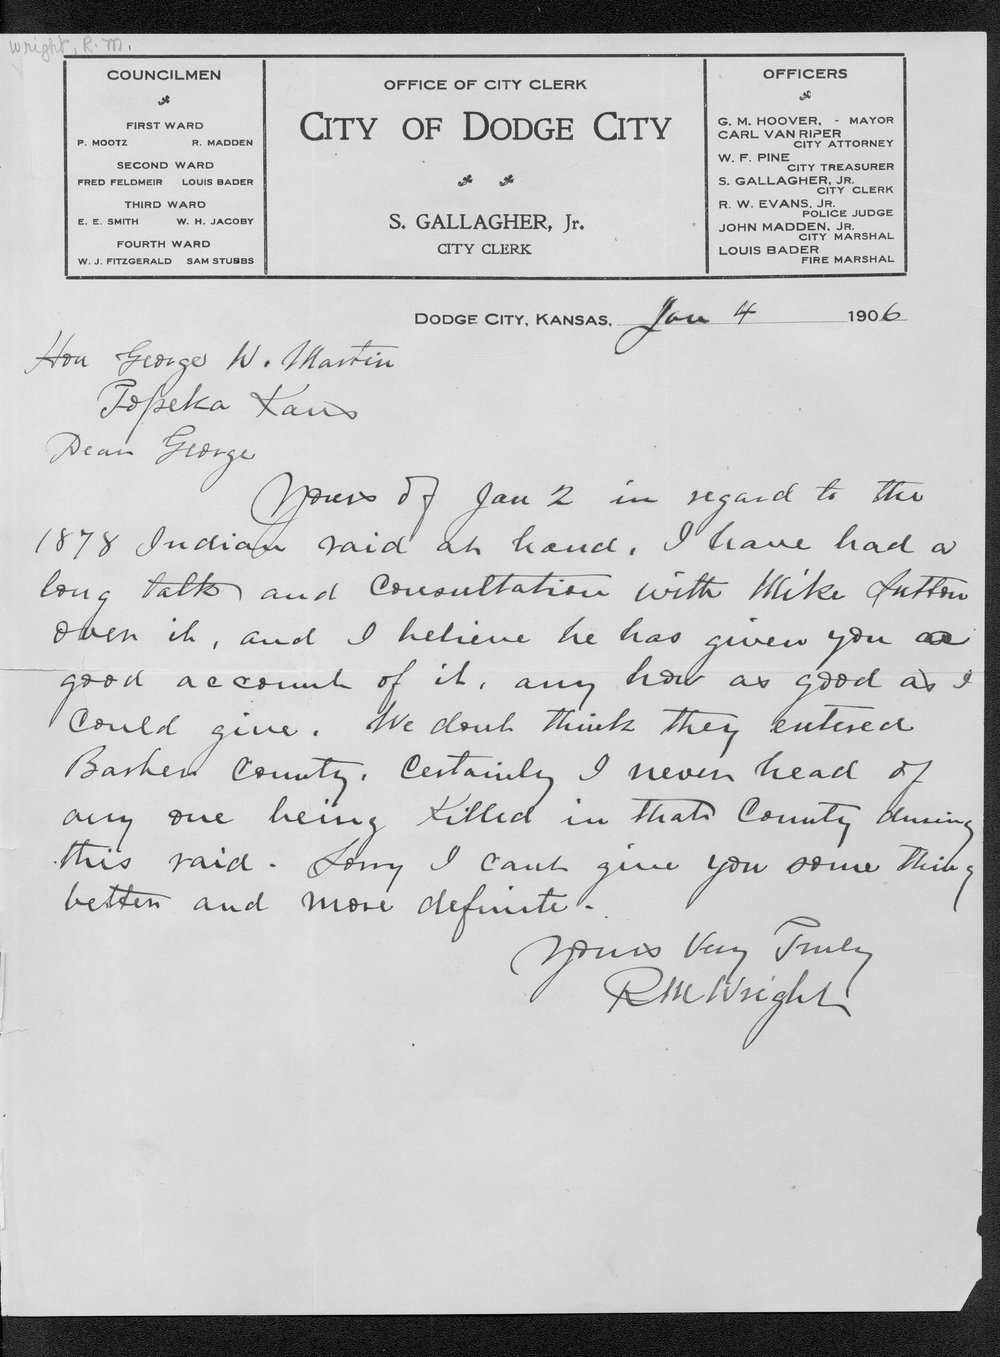 George Martin correspondence on the 1878 route of the Cheyenne Indians through Kansas - 4